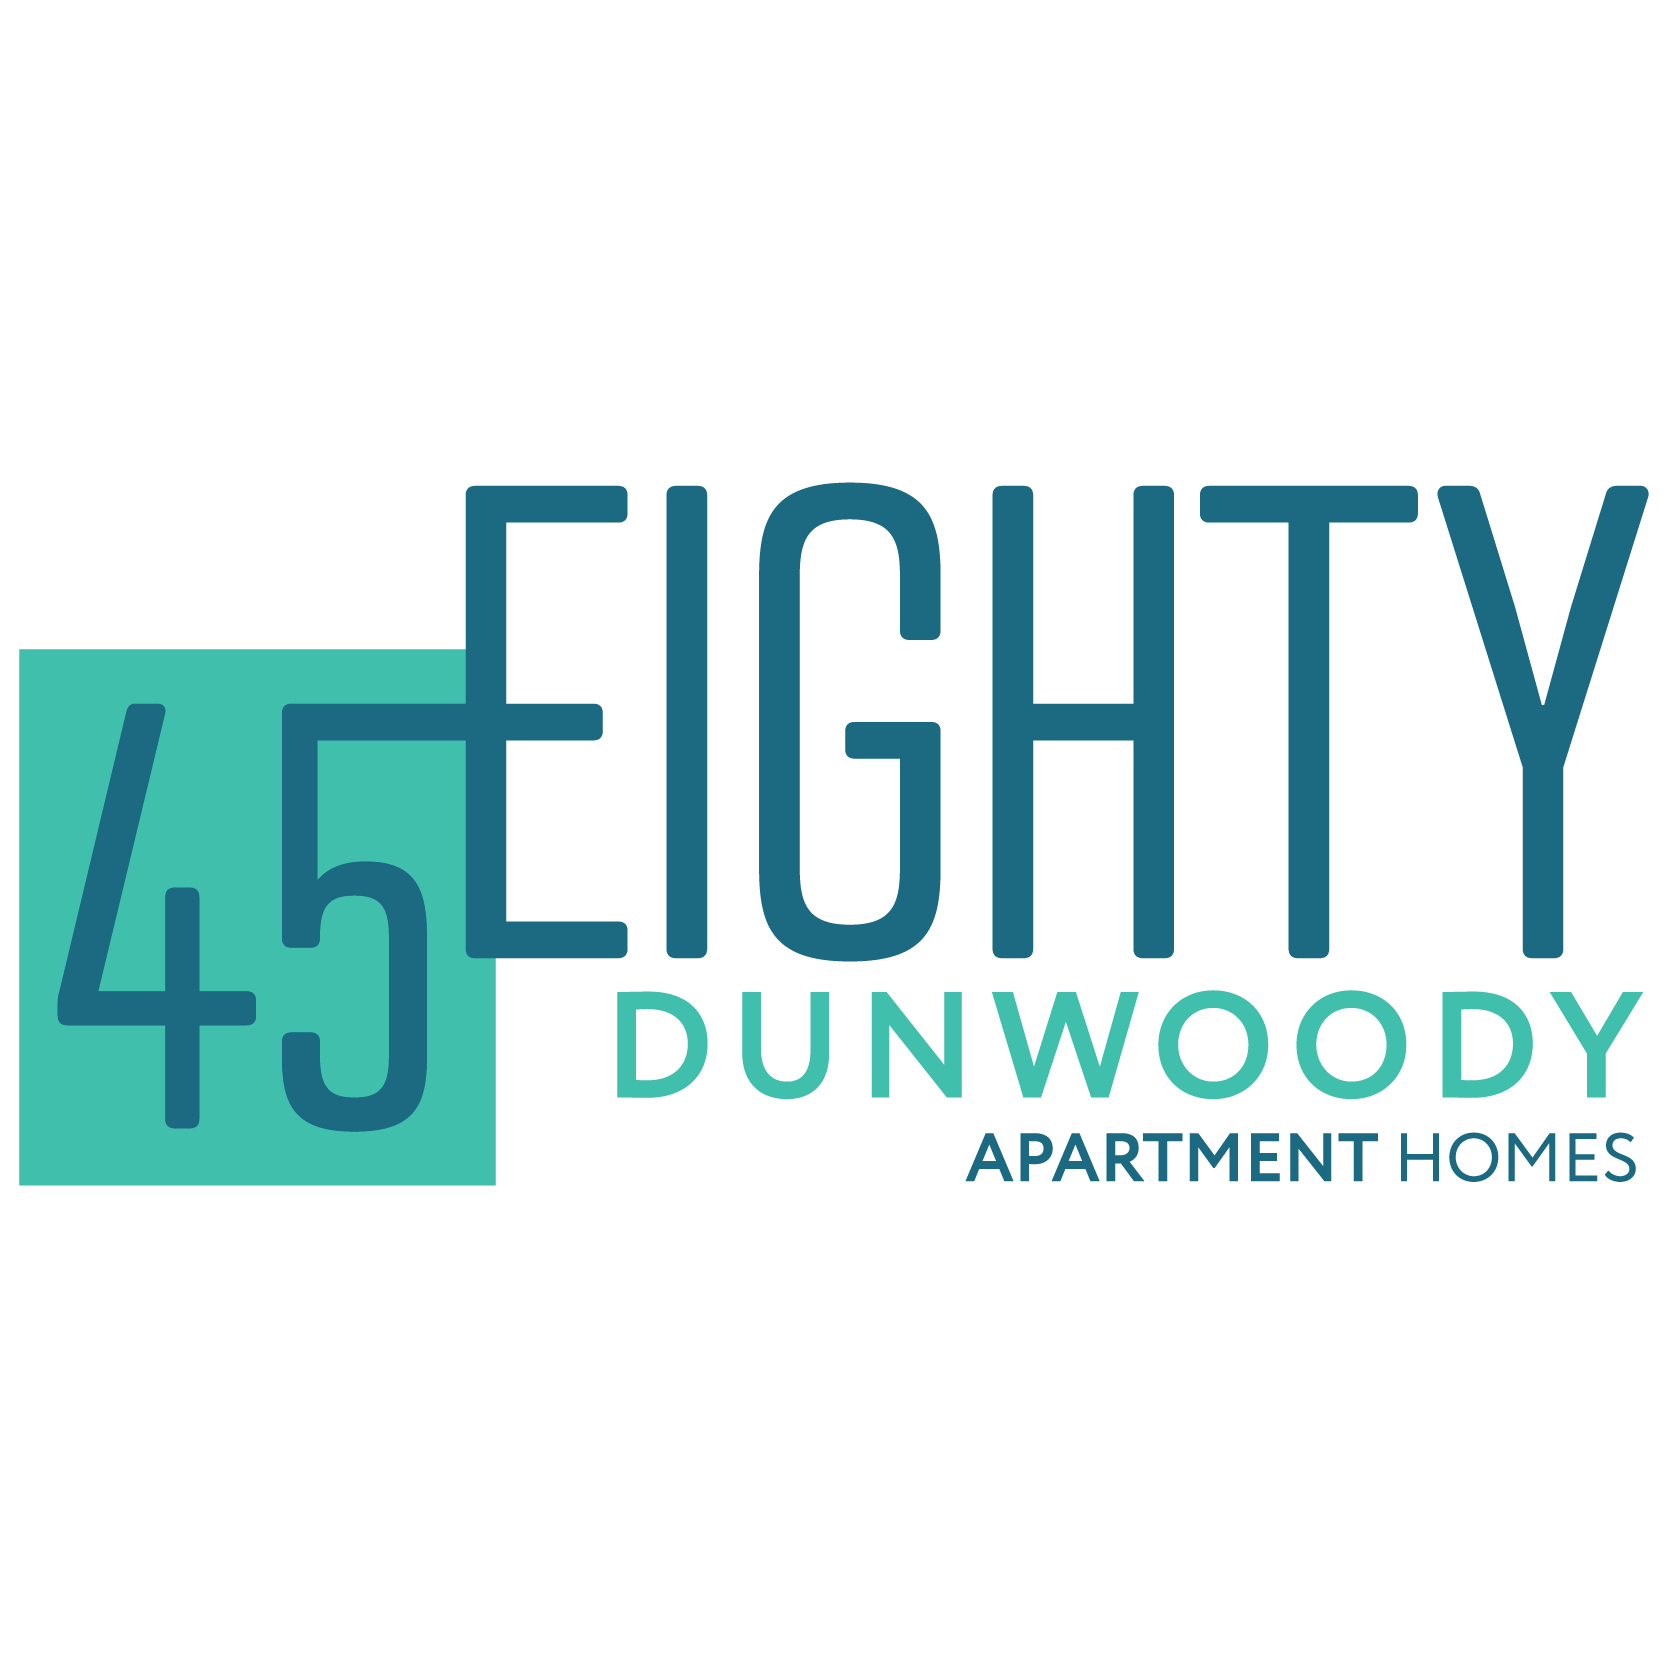 45Eighty Dunwoody Apartment Homes